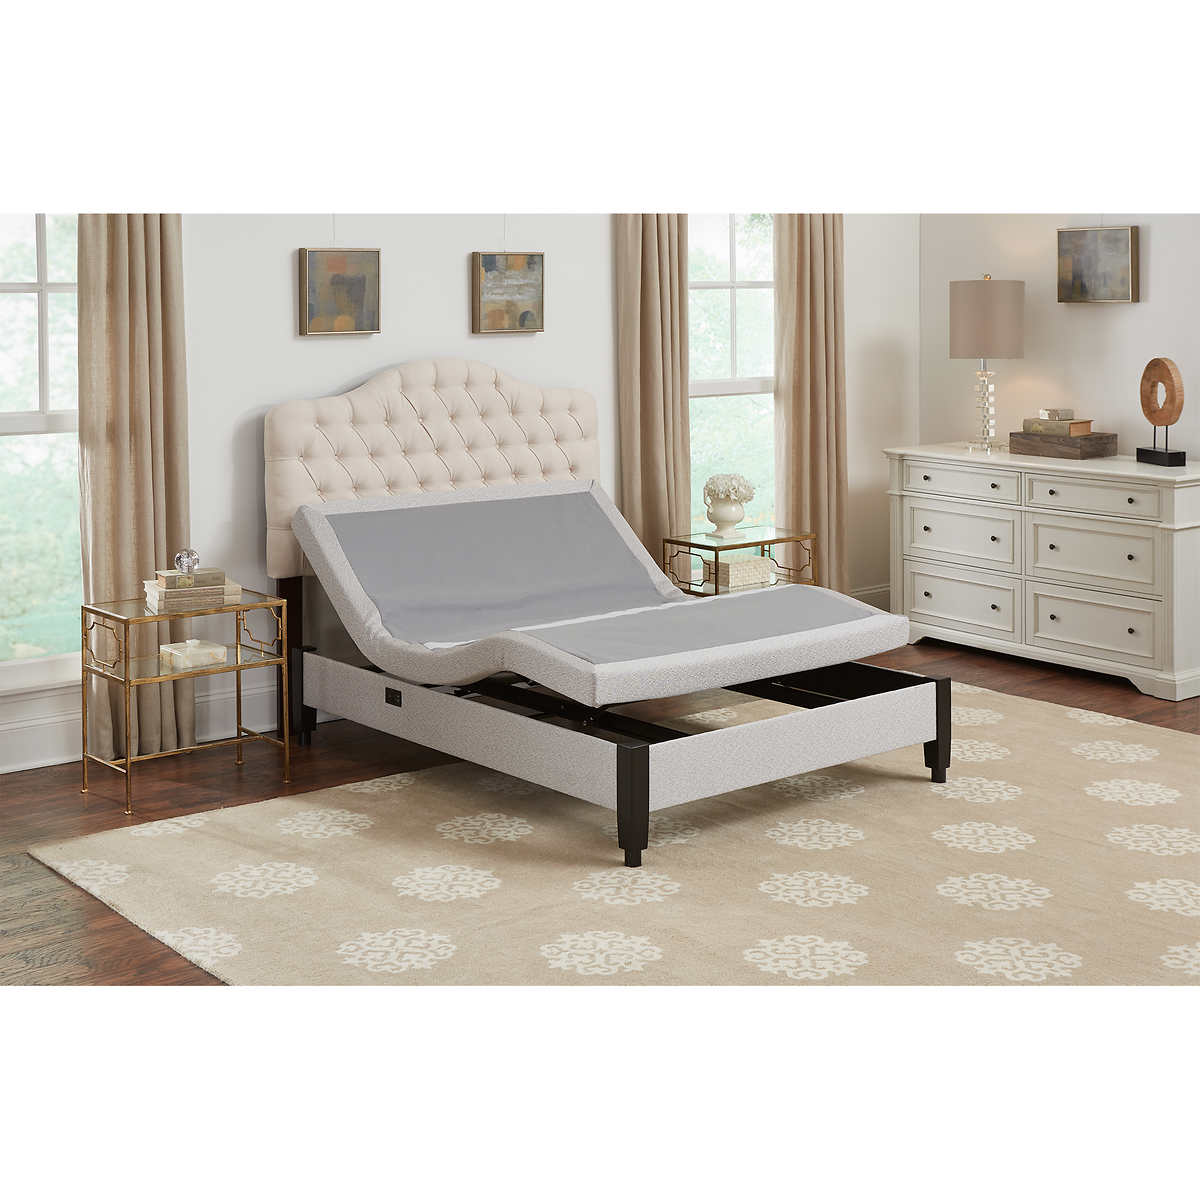 leggett platt attwood adjustable queen base - Adjustable Queen Bed Frame